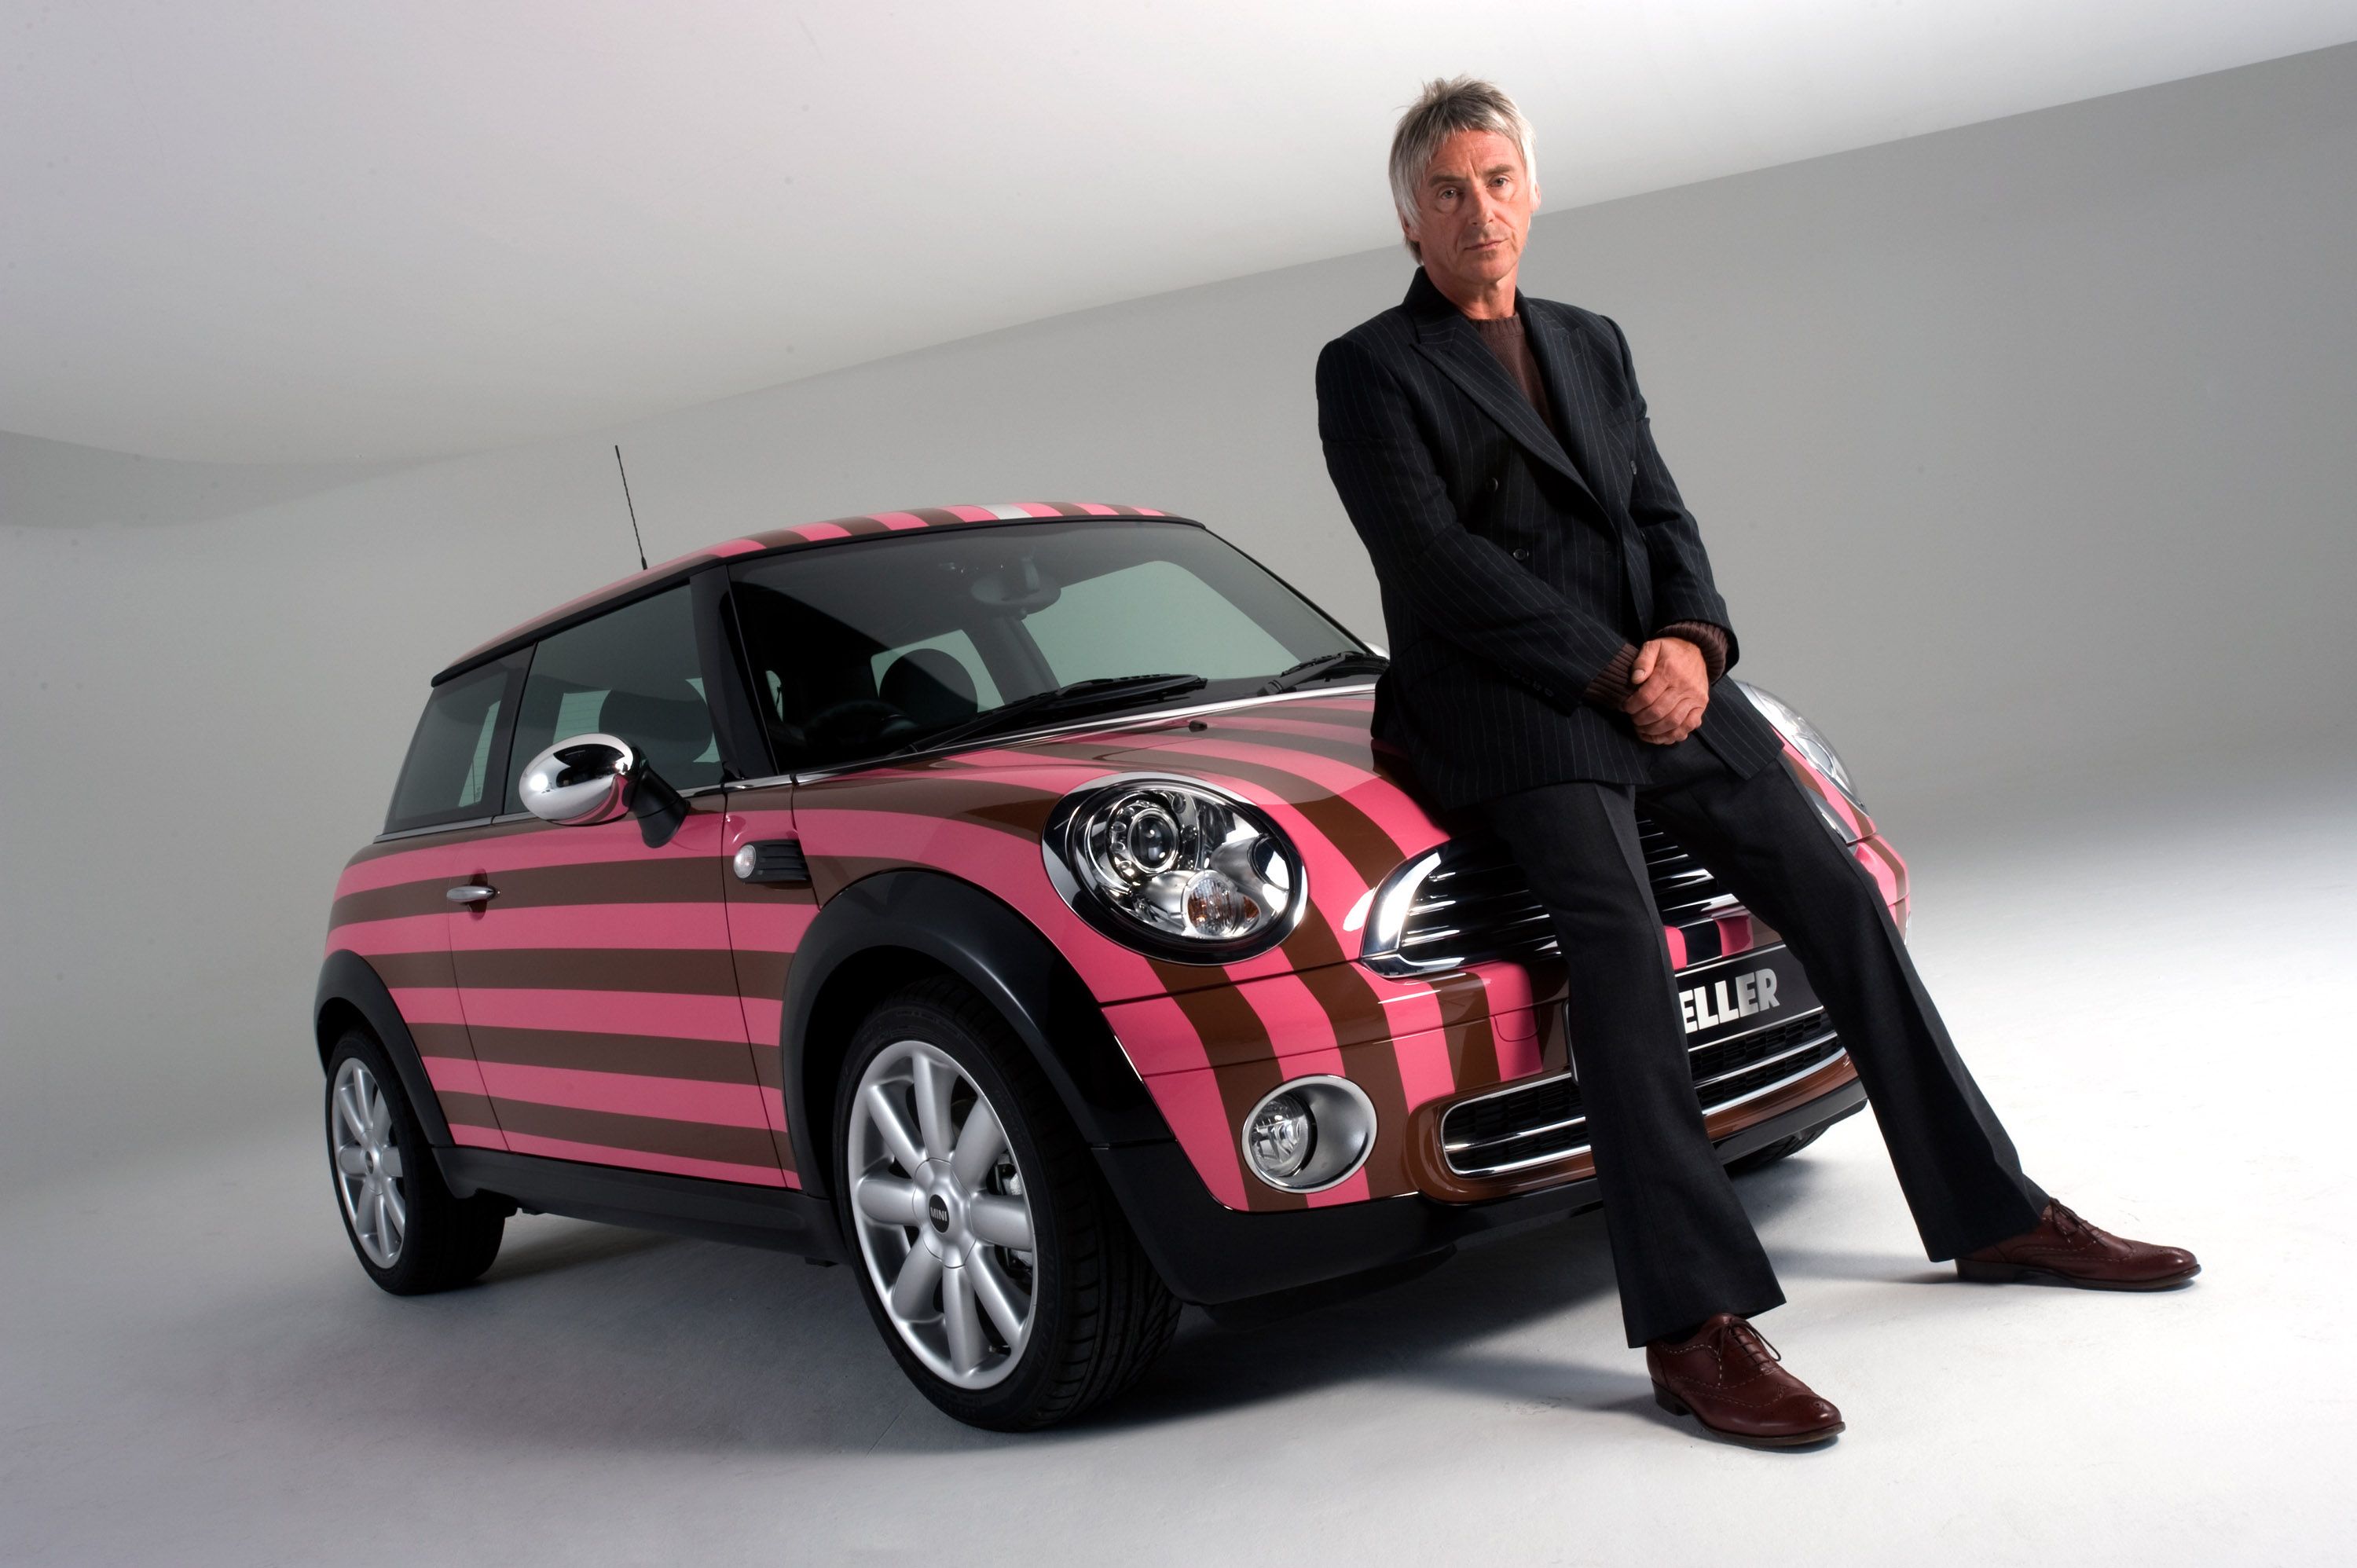 Custom Classic Car Wallpapers Paul Weller Mini Cooper A One Off Car For Charity